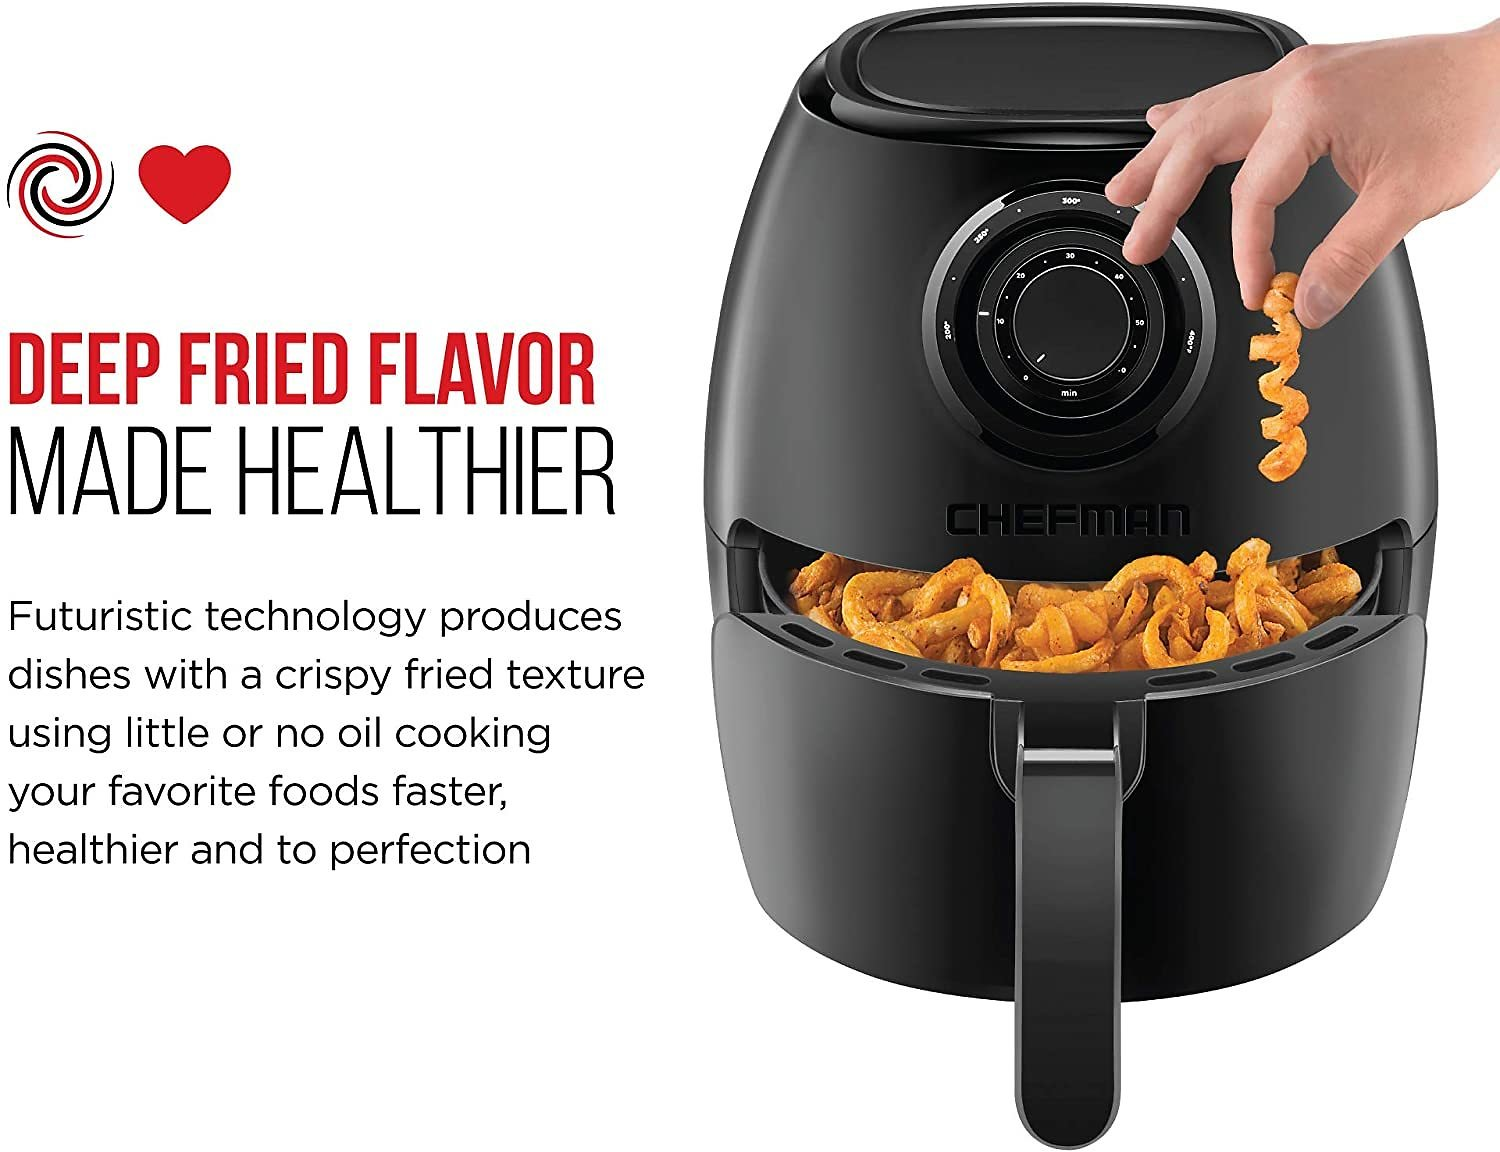 Chefman TurboFry 3.6-Quart Air Fryer Oven w/ Dishwasher Safe Basket and Dual Control Temperature